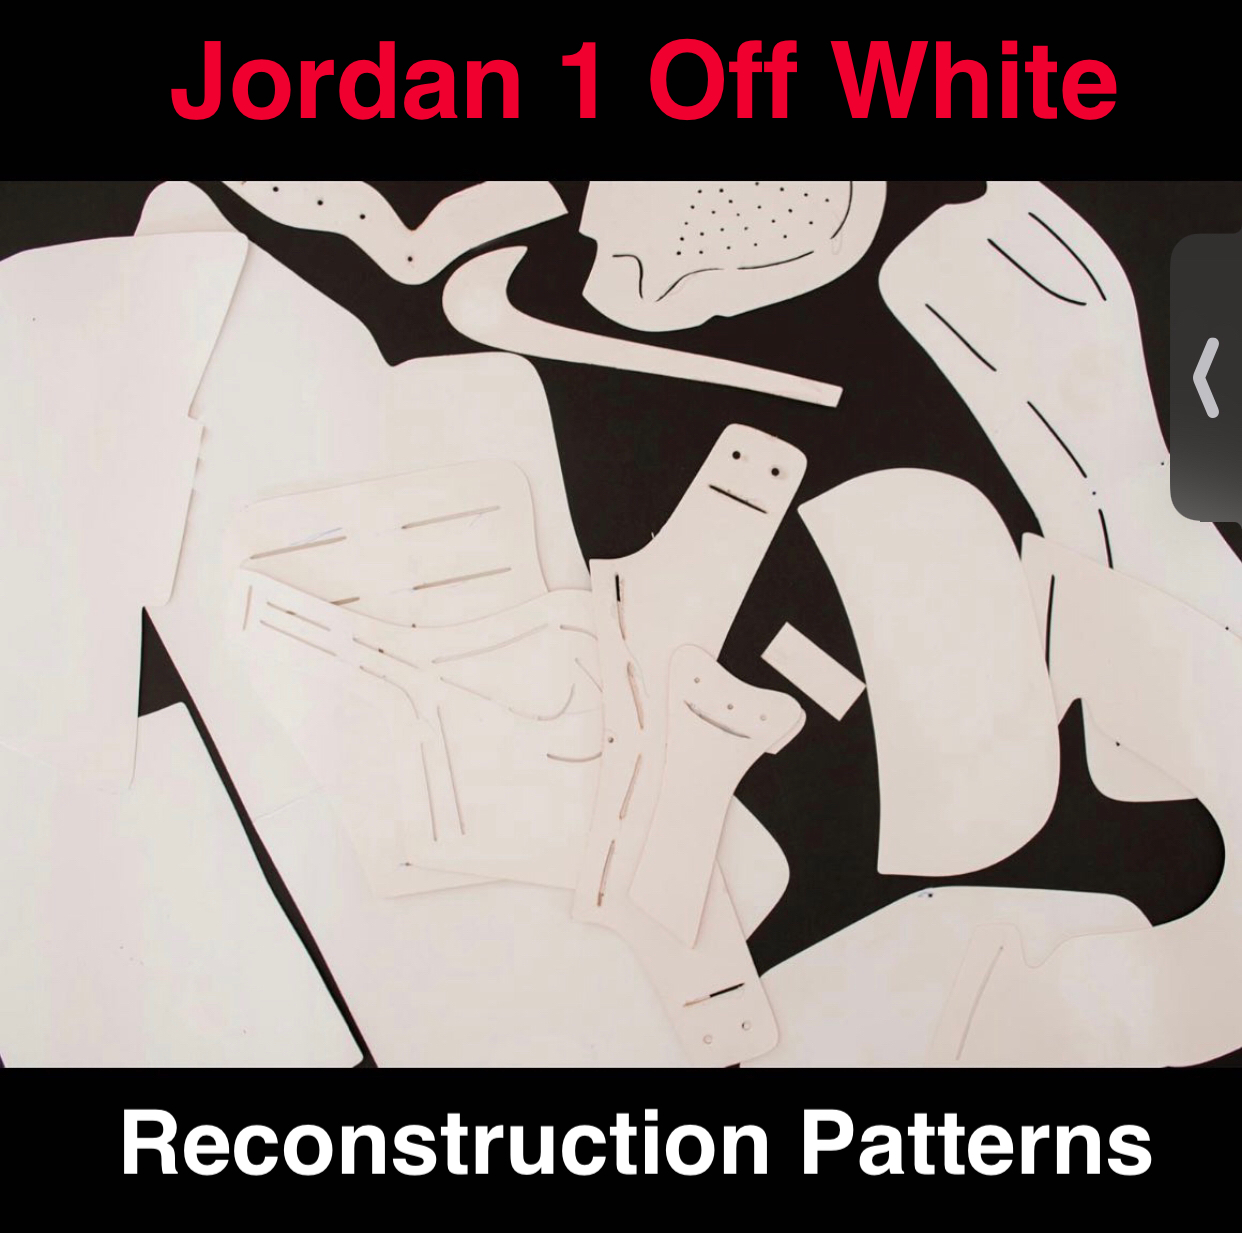 Jordan 1 Off White Paper Patterns to Reconstruct Shoes